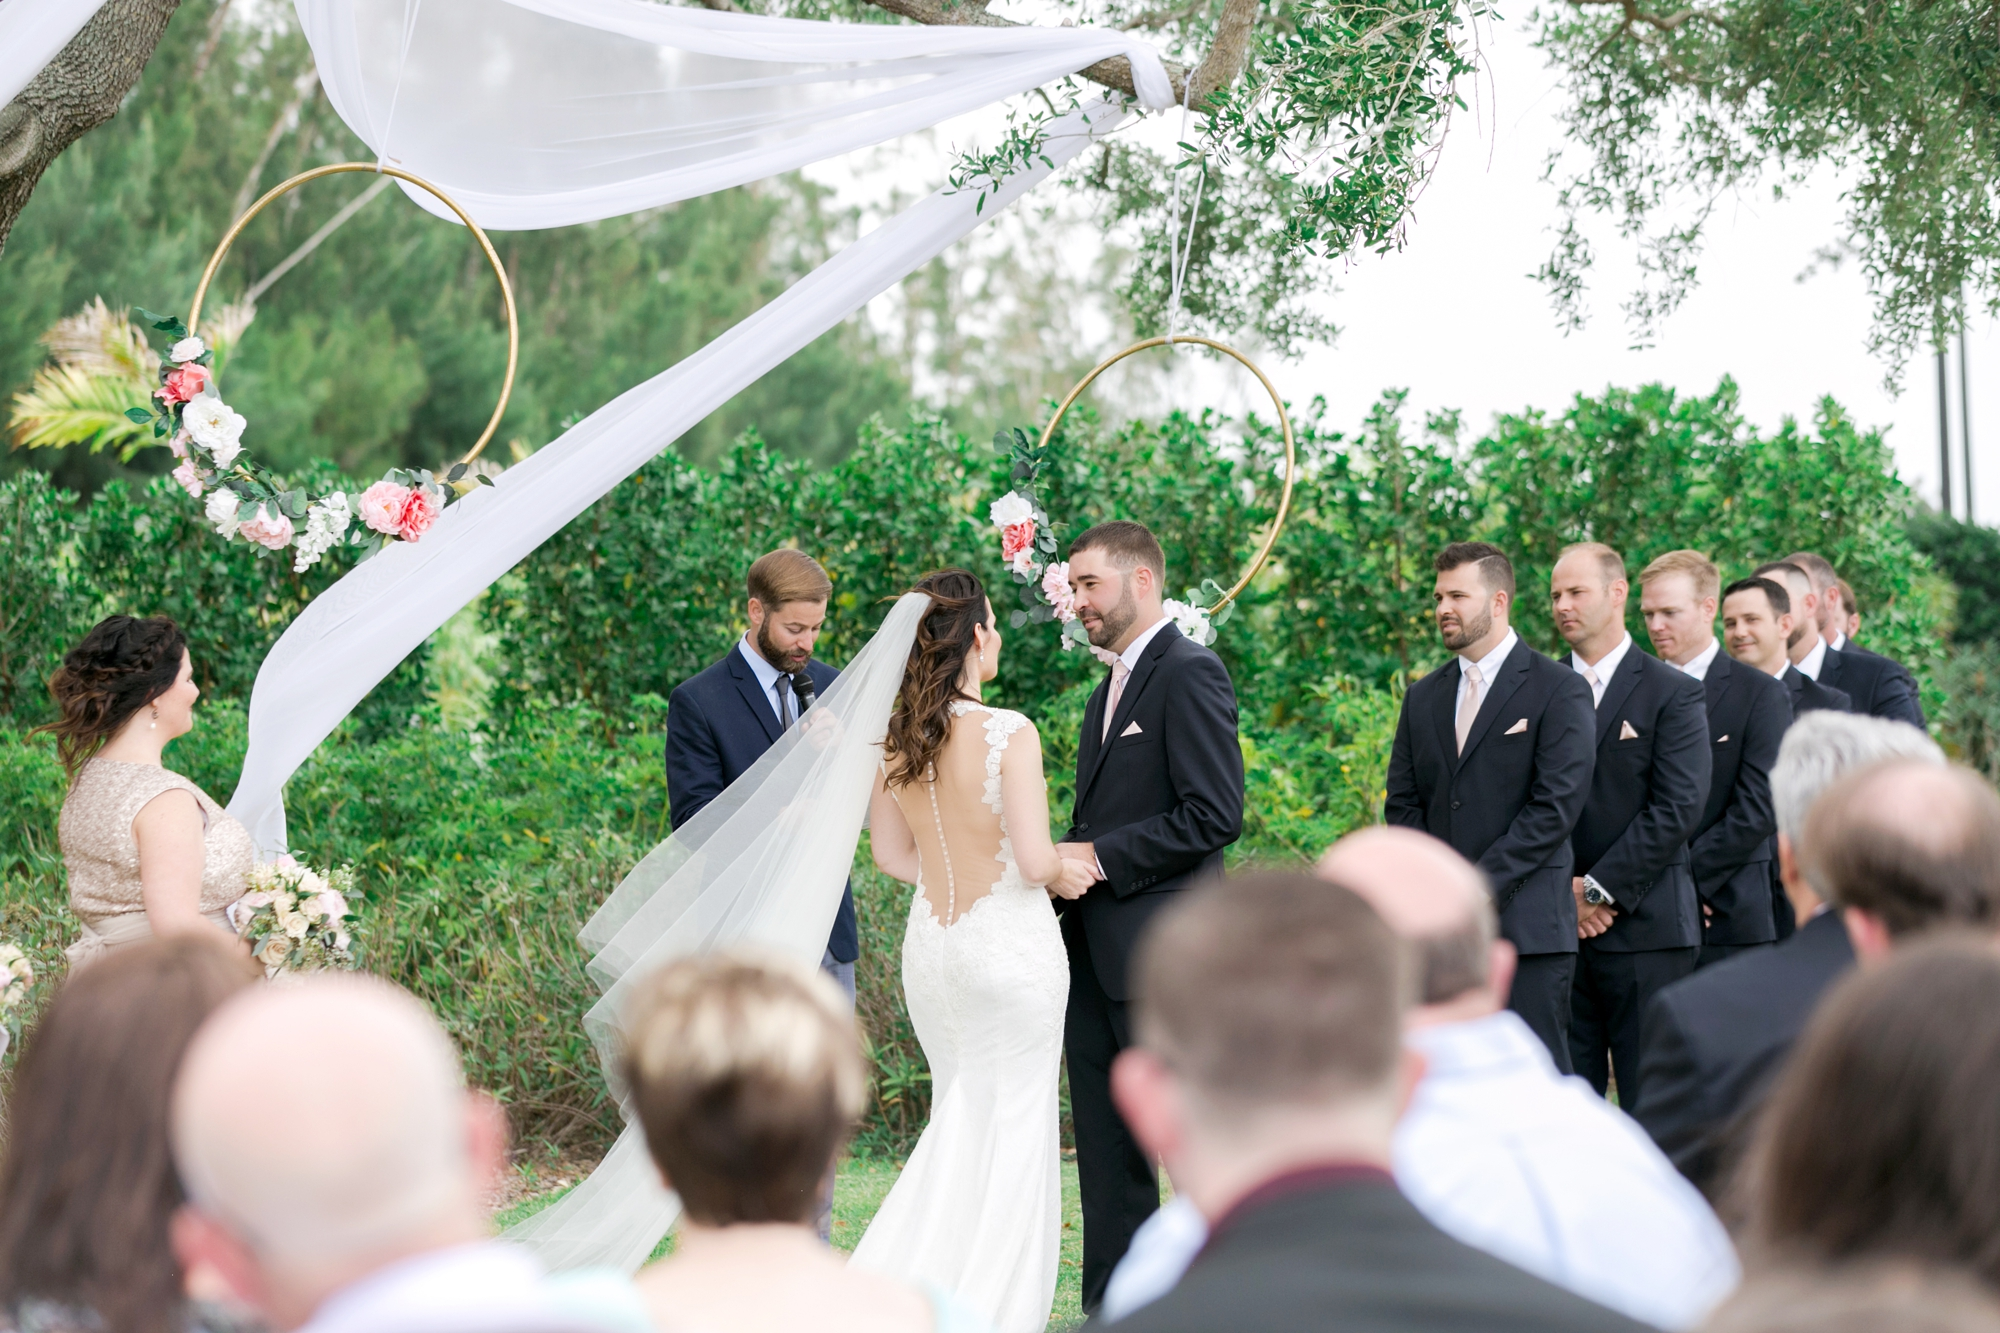 sheer drapes at outside ceremony space